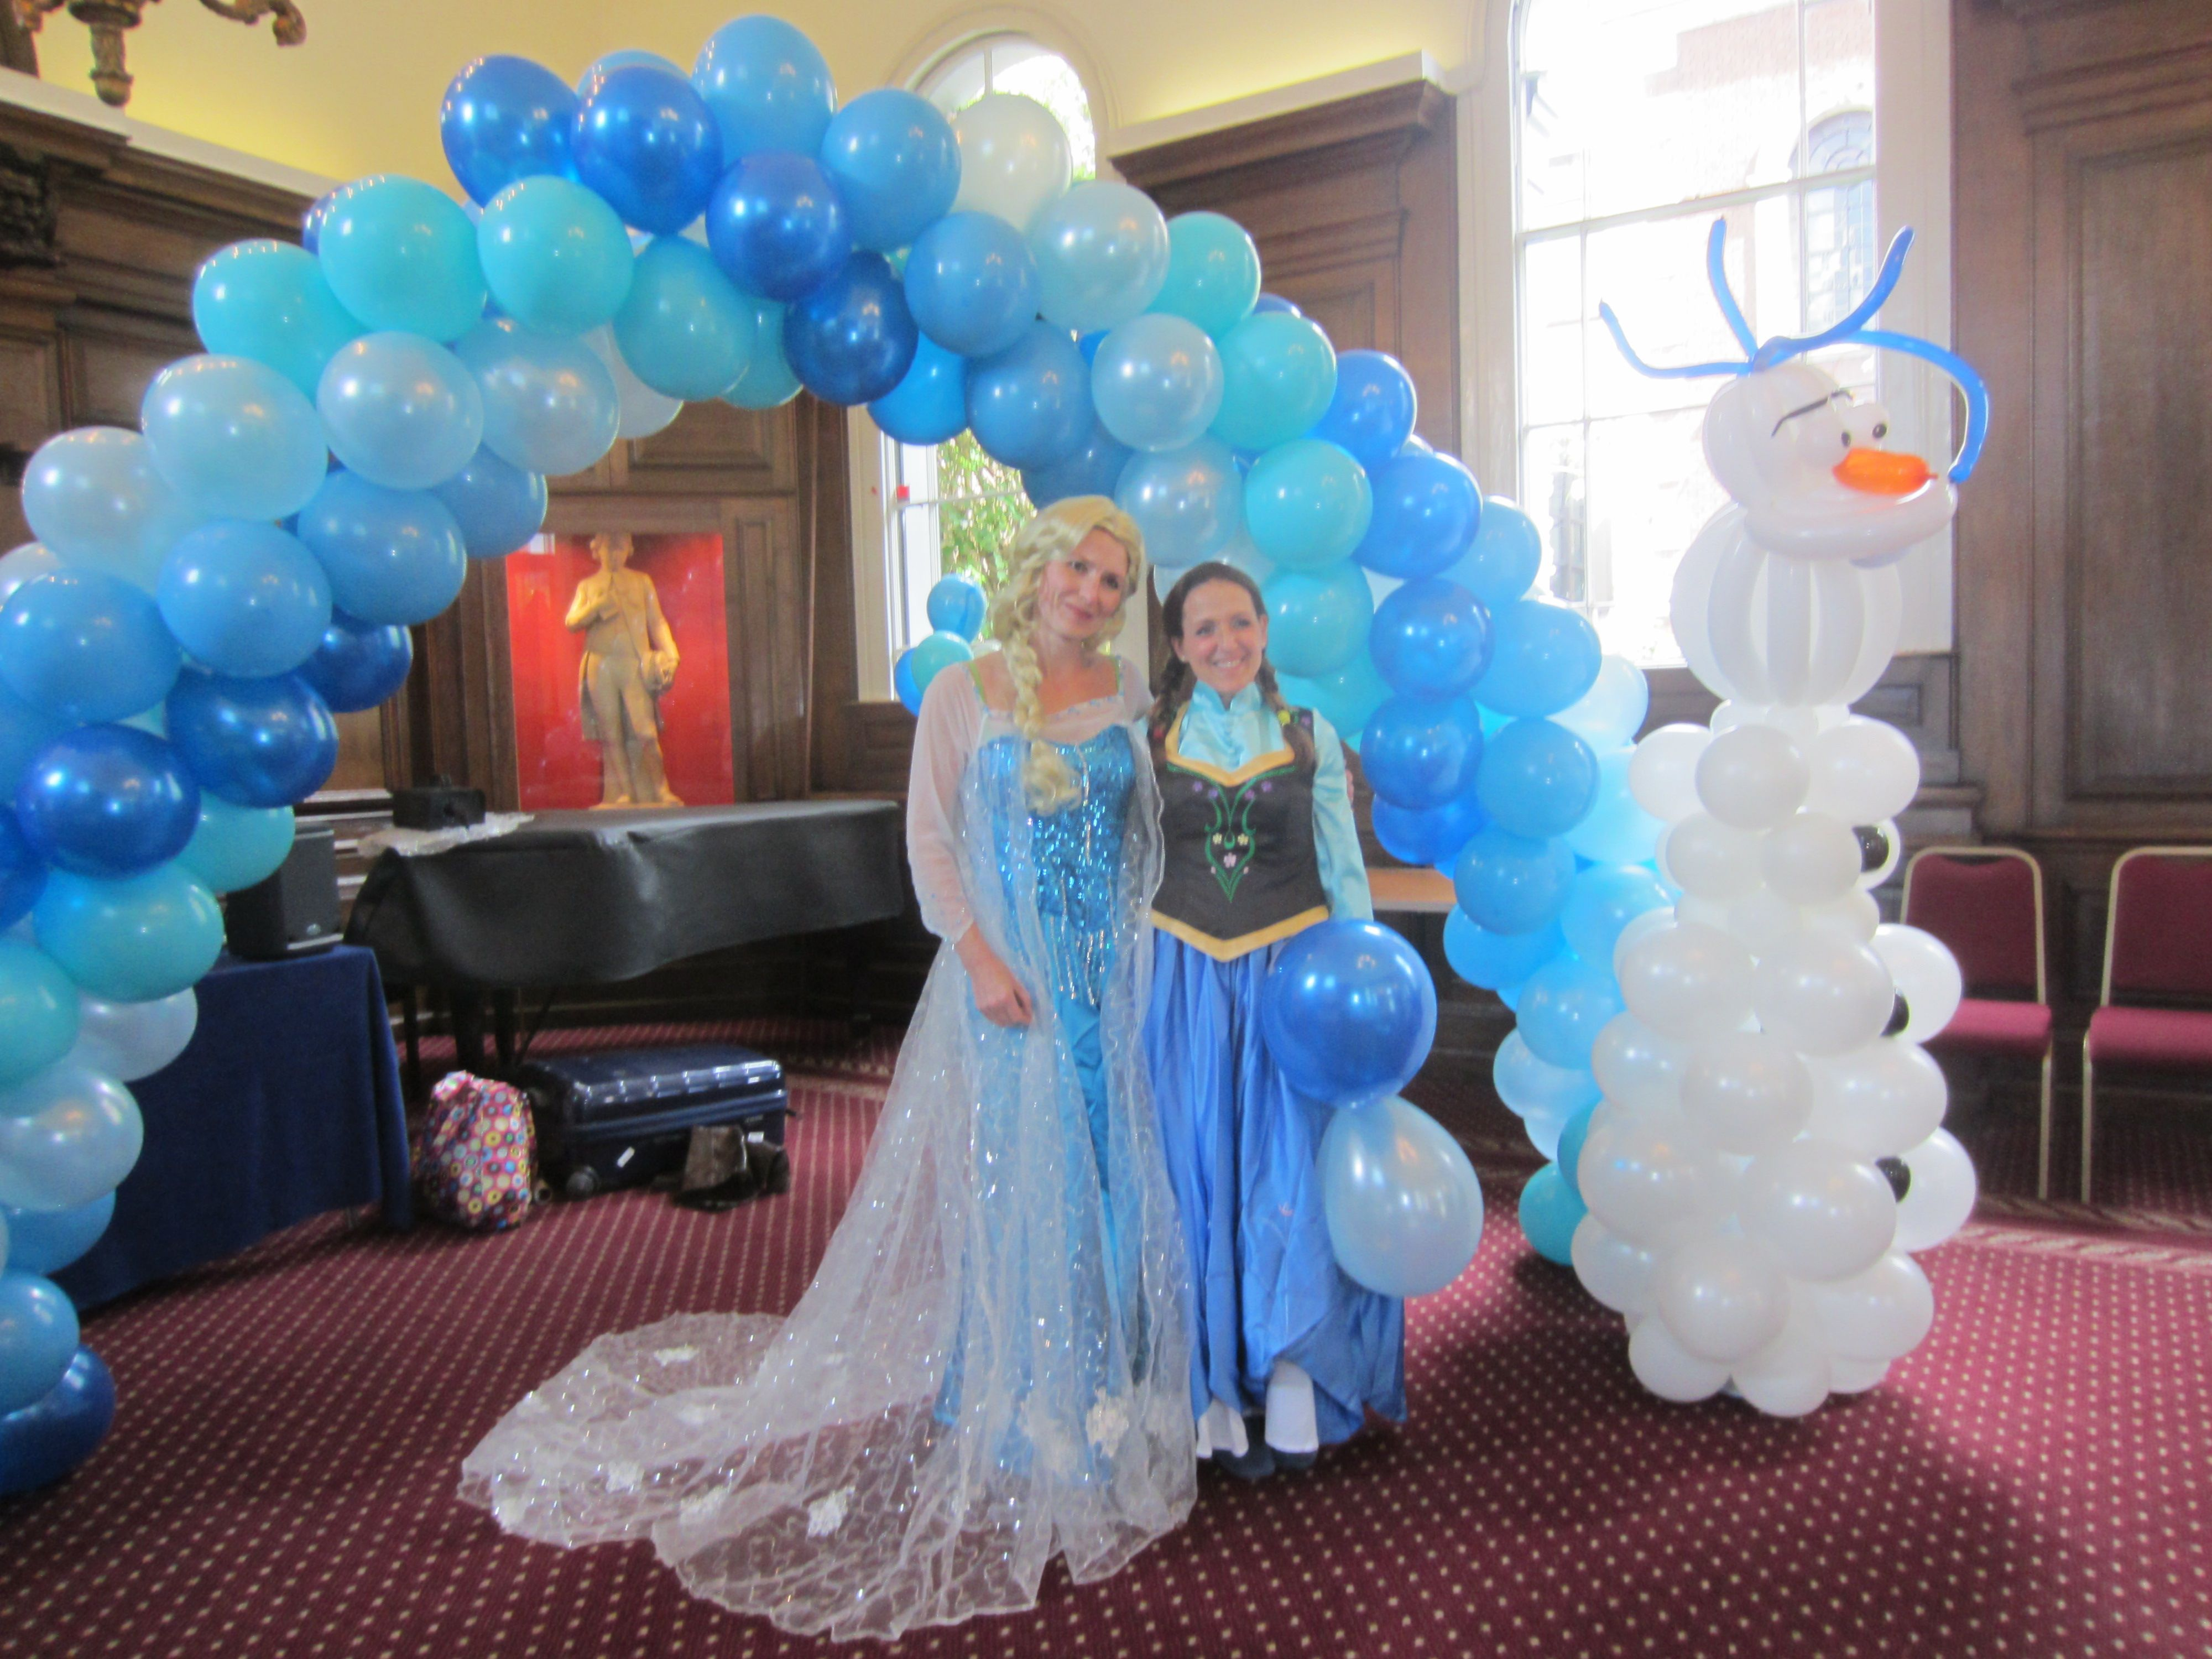 Jojofun entertainers as anna and elsa with bespoke olaf